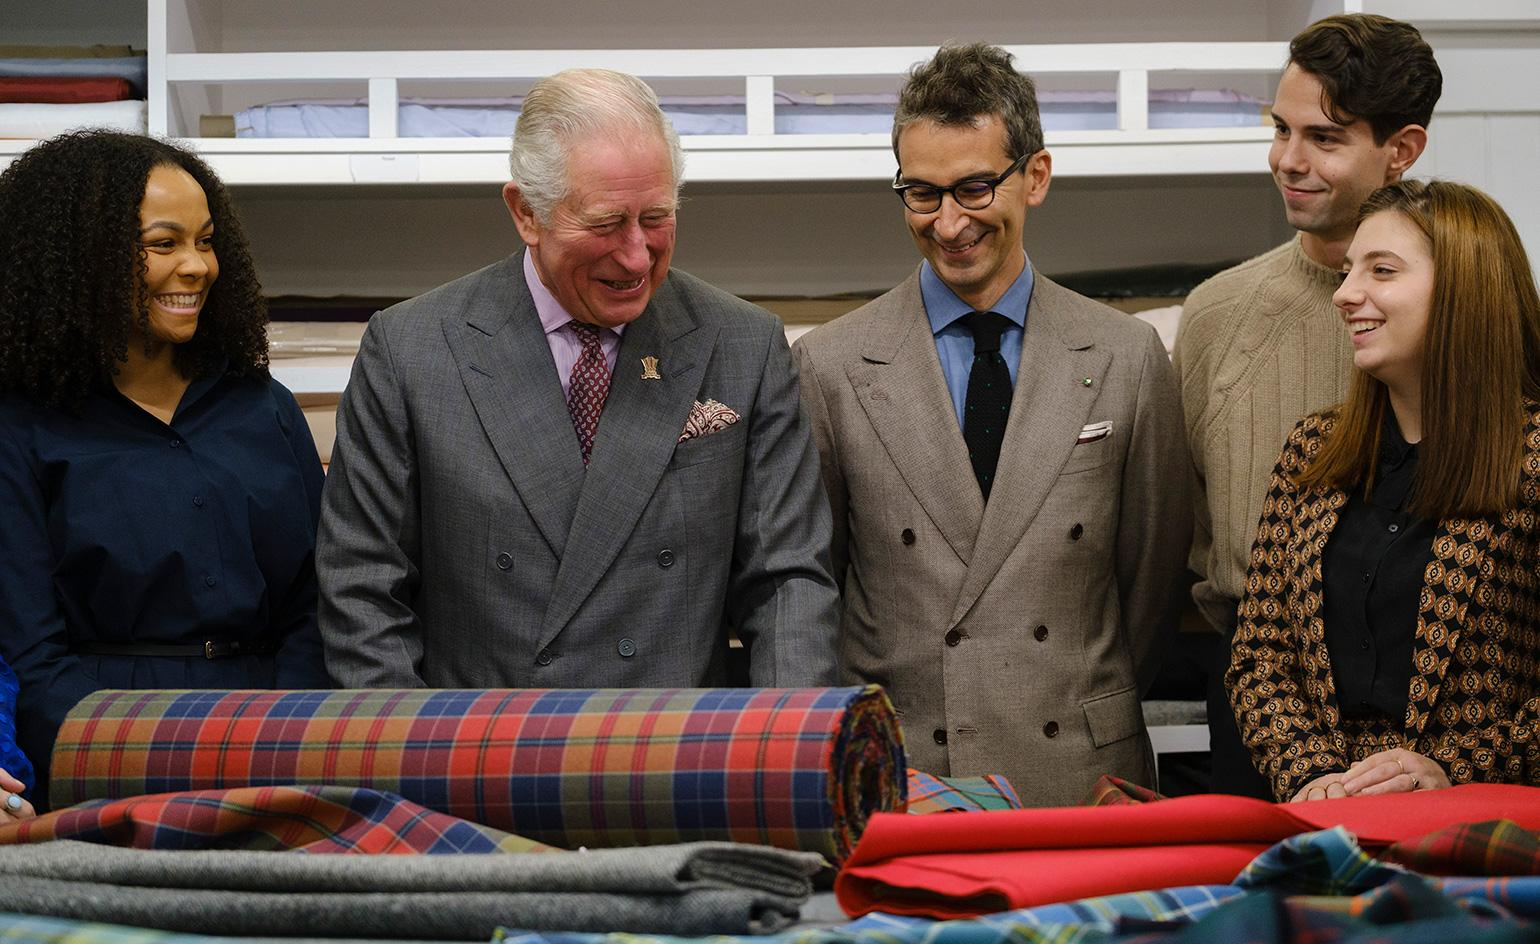 HRH Prince Charles and Yoox Net-a-porter Group unveil artisanal collaboration